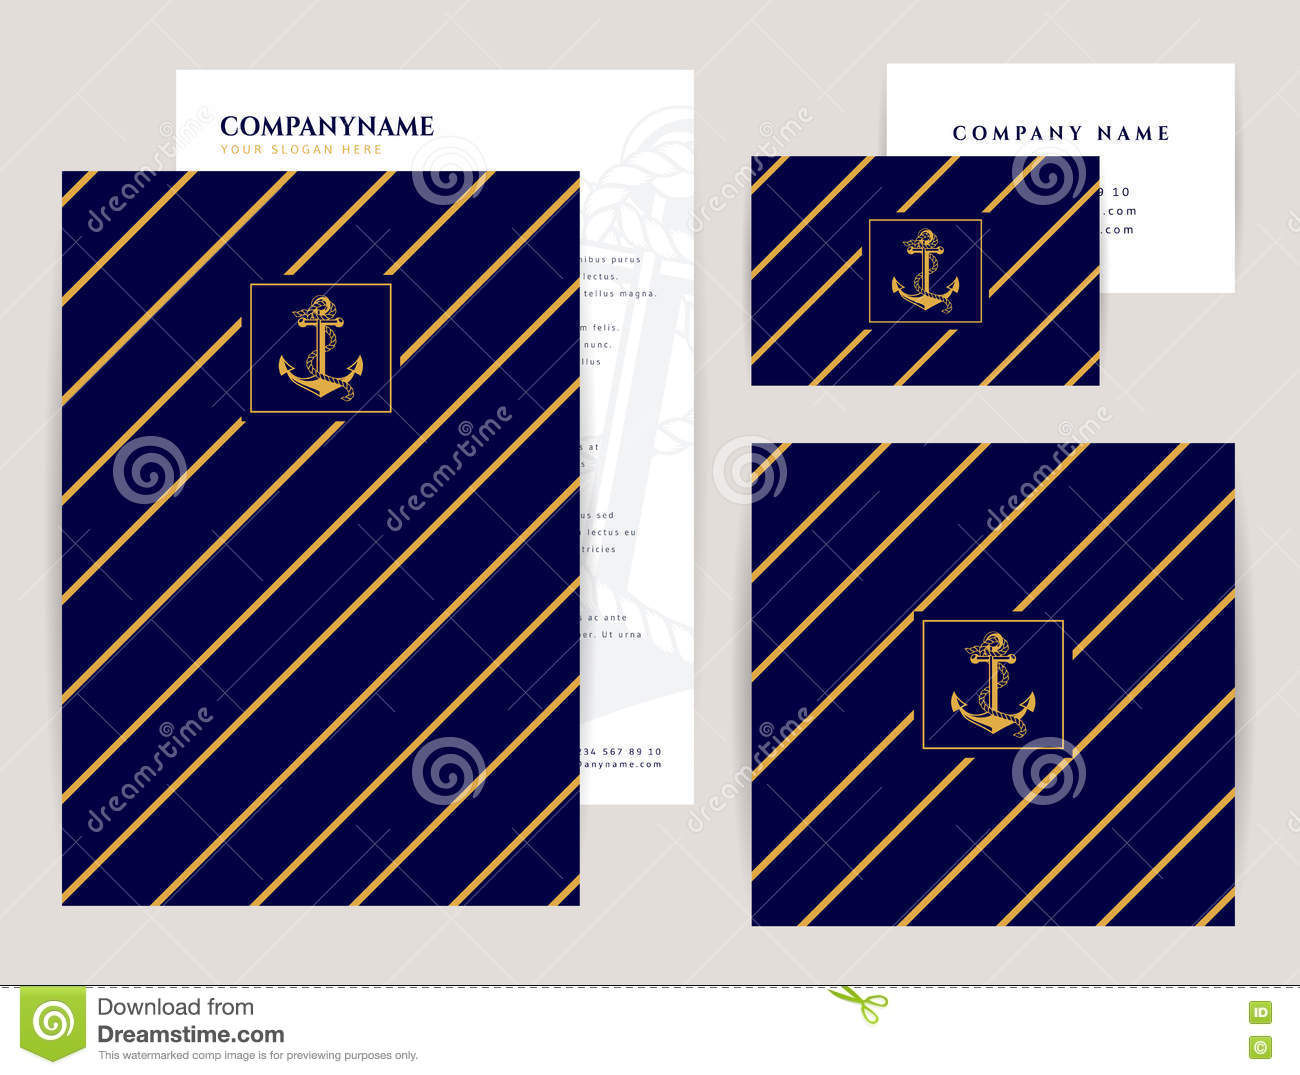 nautical and sea cruise themes flyer square banner and business card elegant branding design vector collection